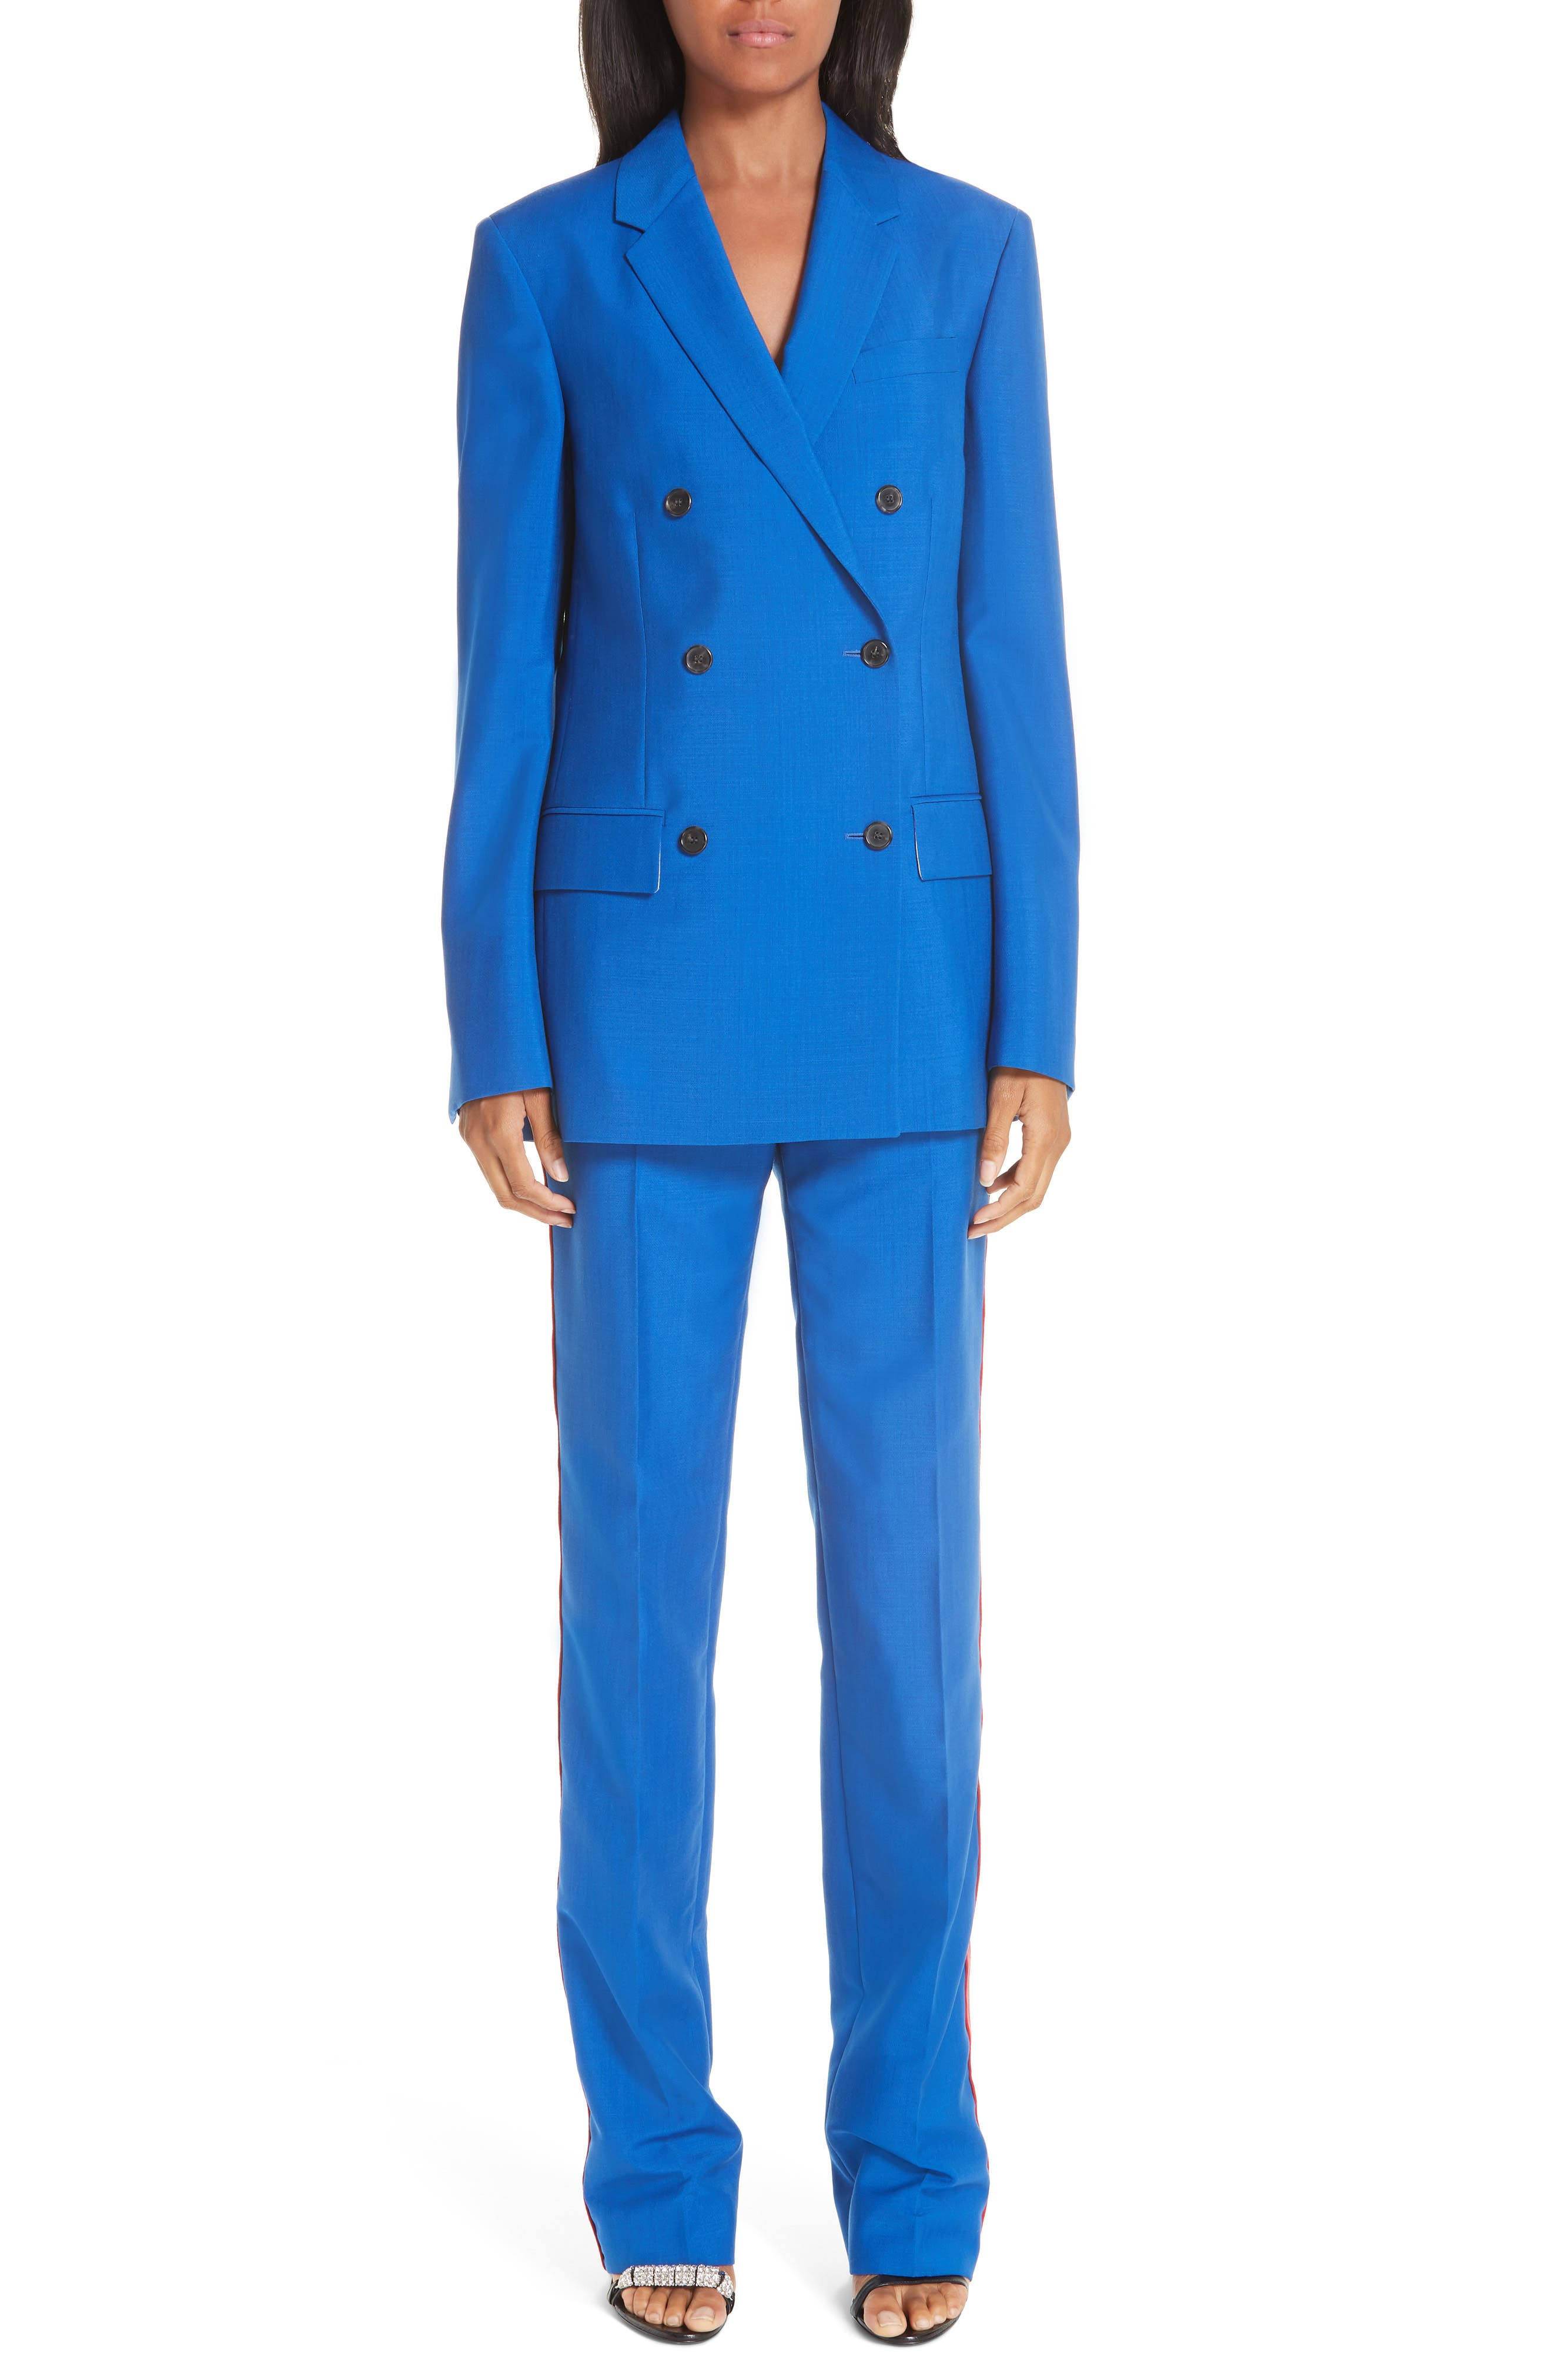 CALVIN KLEIN 205W39NYC, Mohair & Wool Double Breasted Blazer, Alternate thumbnail 7, color, BRIGHT BLUE